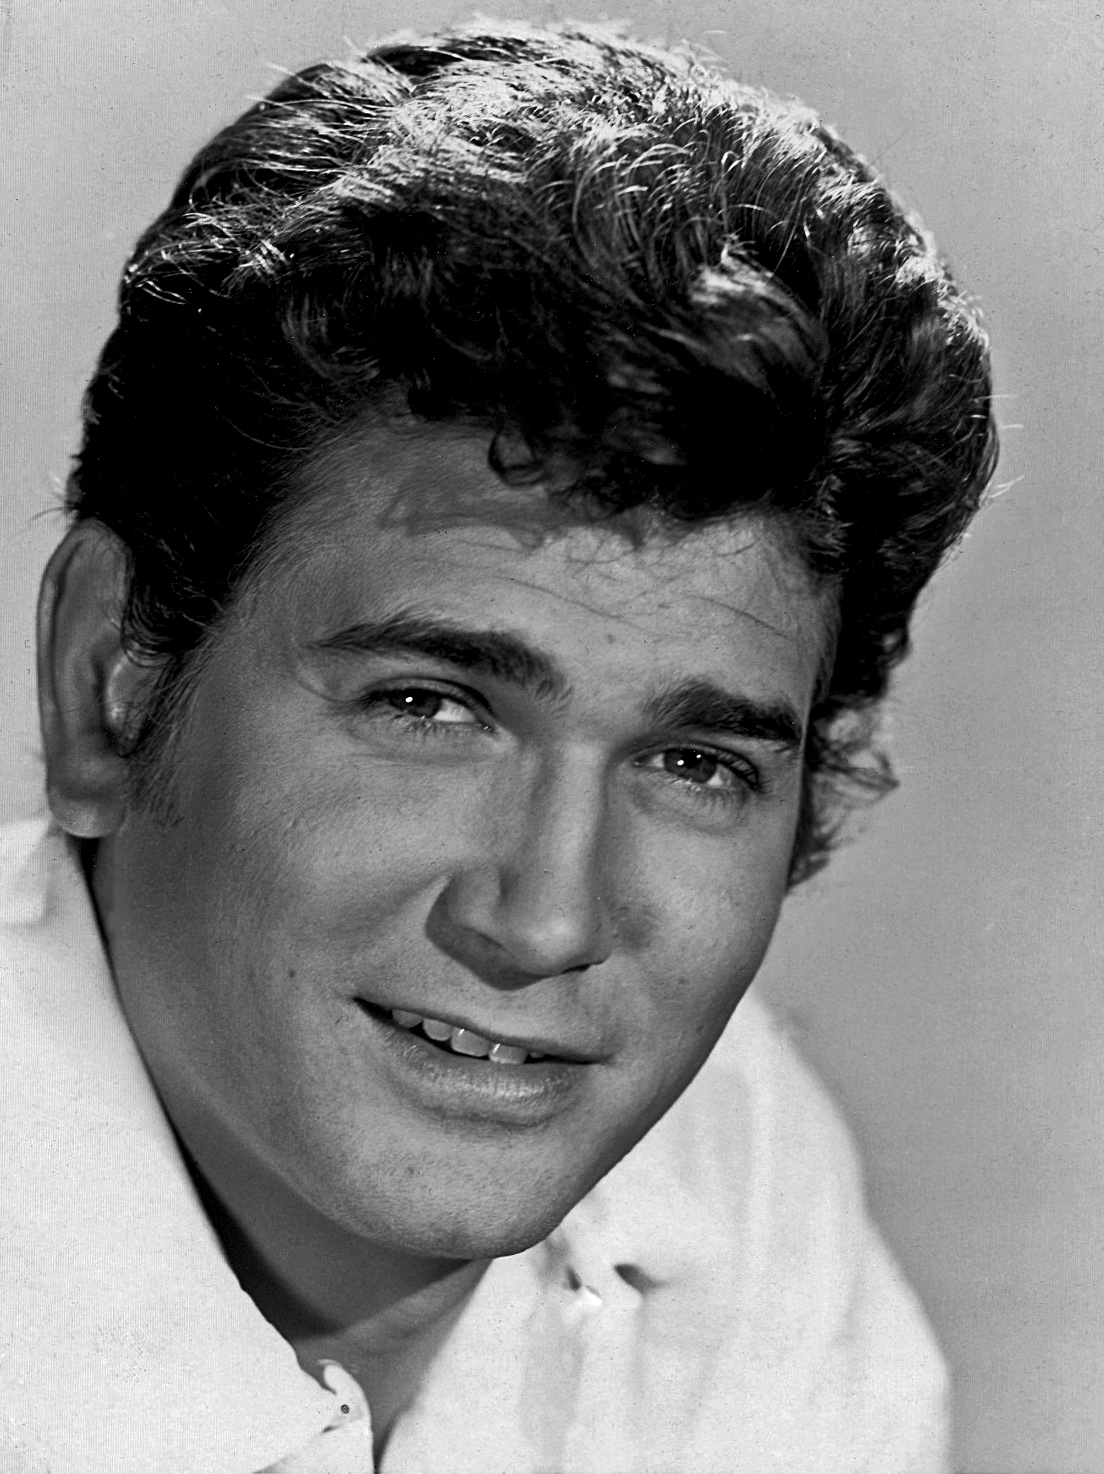 Description Michael Landon Publicity